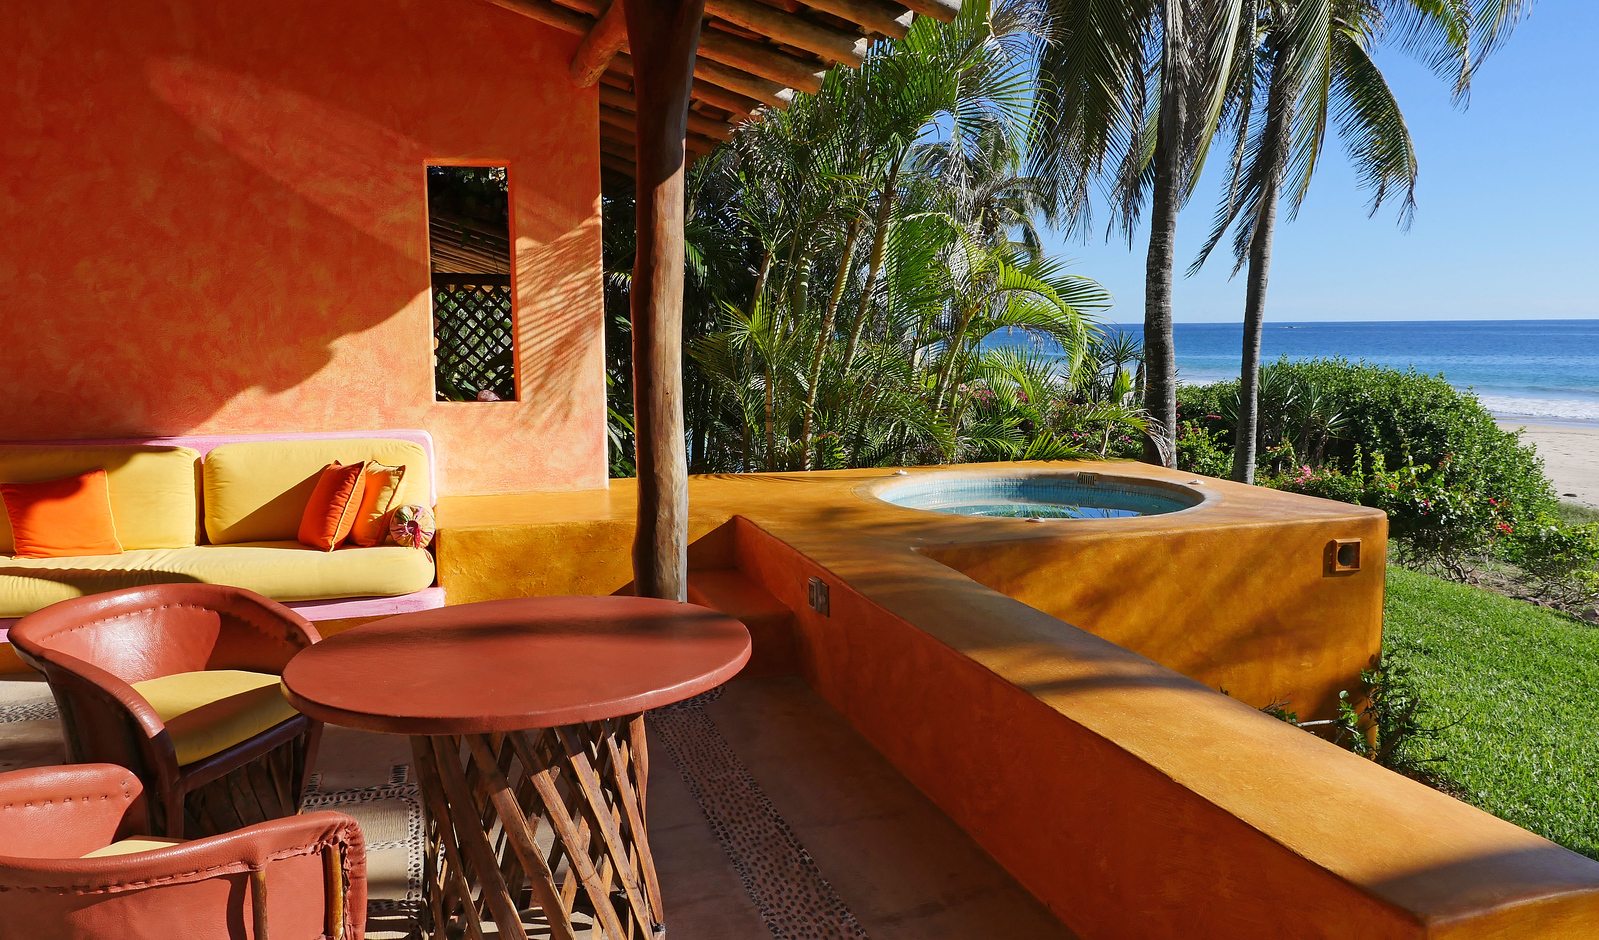 Reasons to Fall in Love with Las Alamandas Resort in Mexico